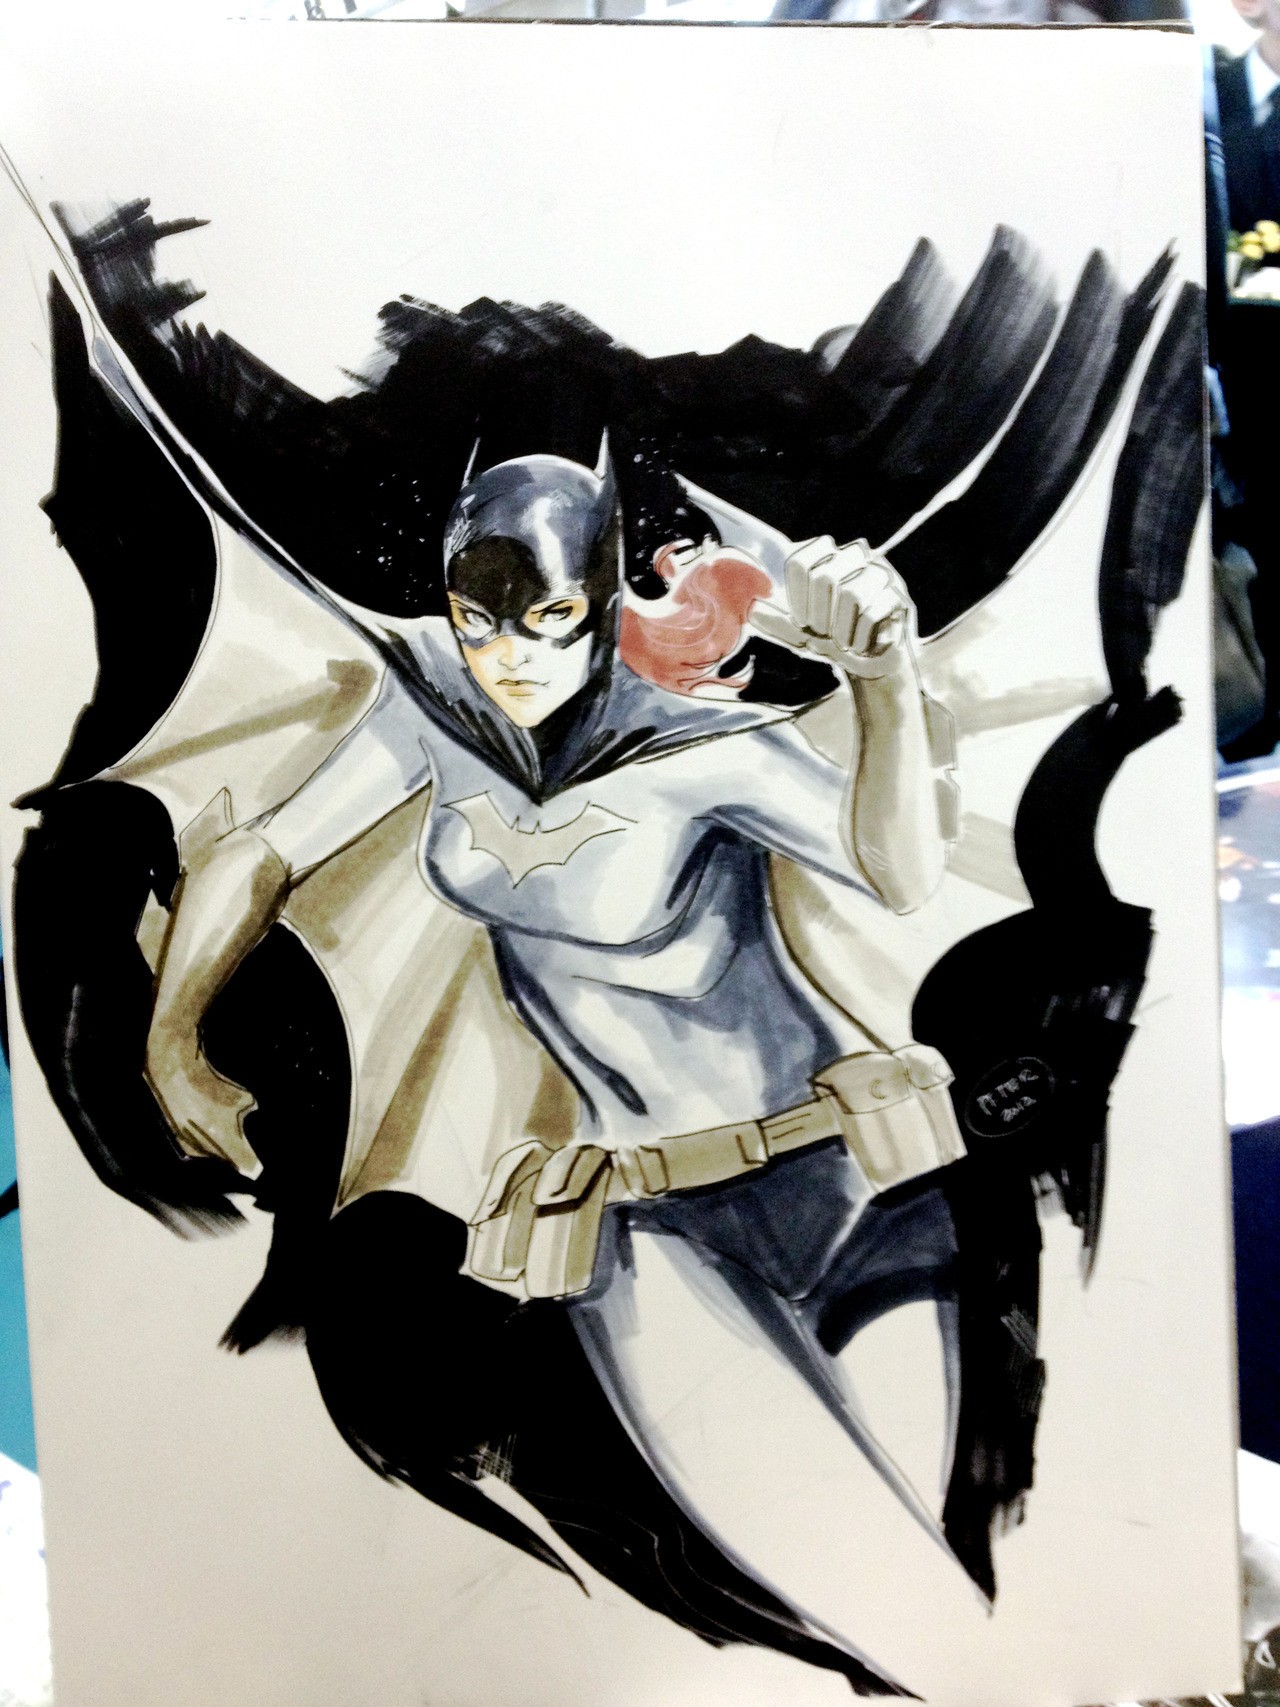 A fun piece i did for a fan in Perth. he than took it Yvonne Craig who who was also at the show and gave me a picture of there meeting. Later on the bus back from perth , when we we talking about the show she said she remembered that drawing and seemed surprised it was me. Fun memories in Perth and Sydney